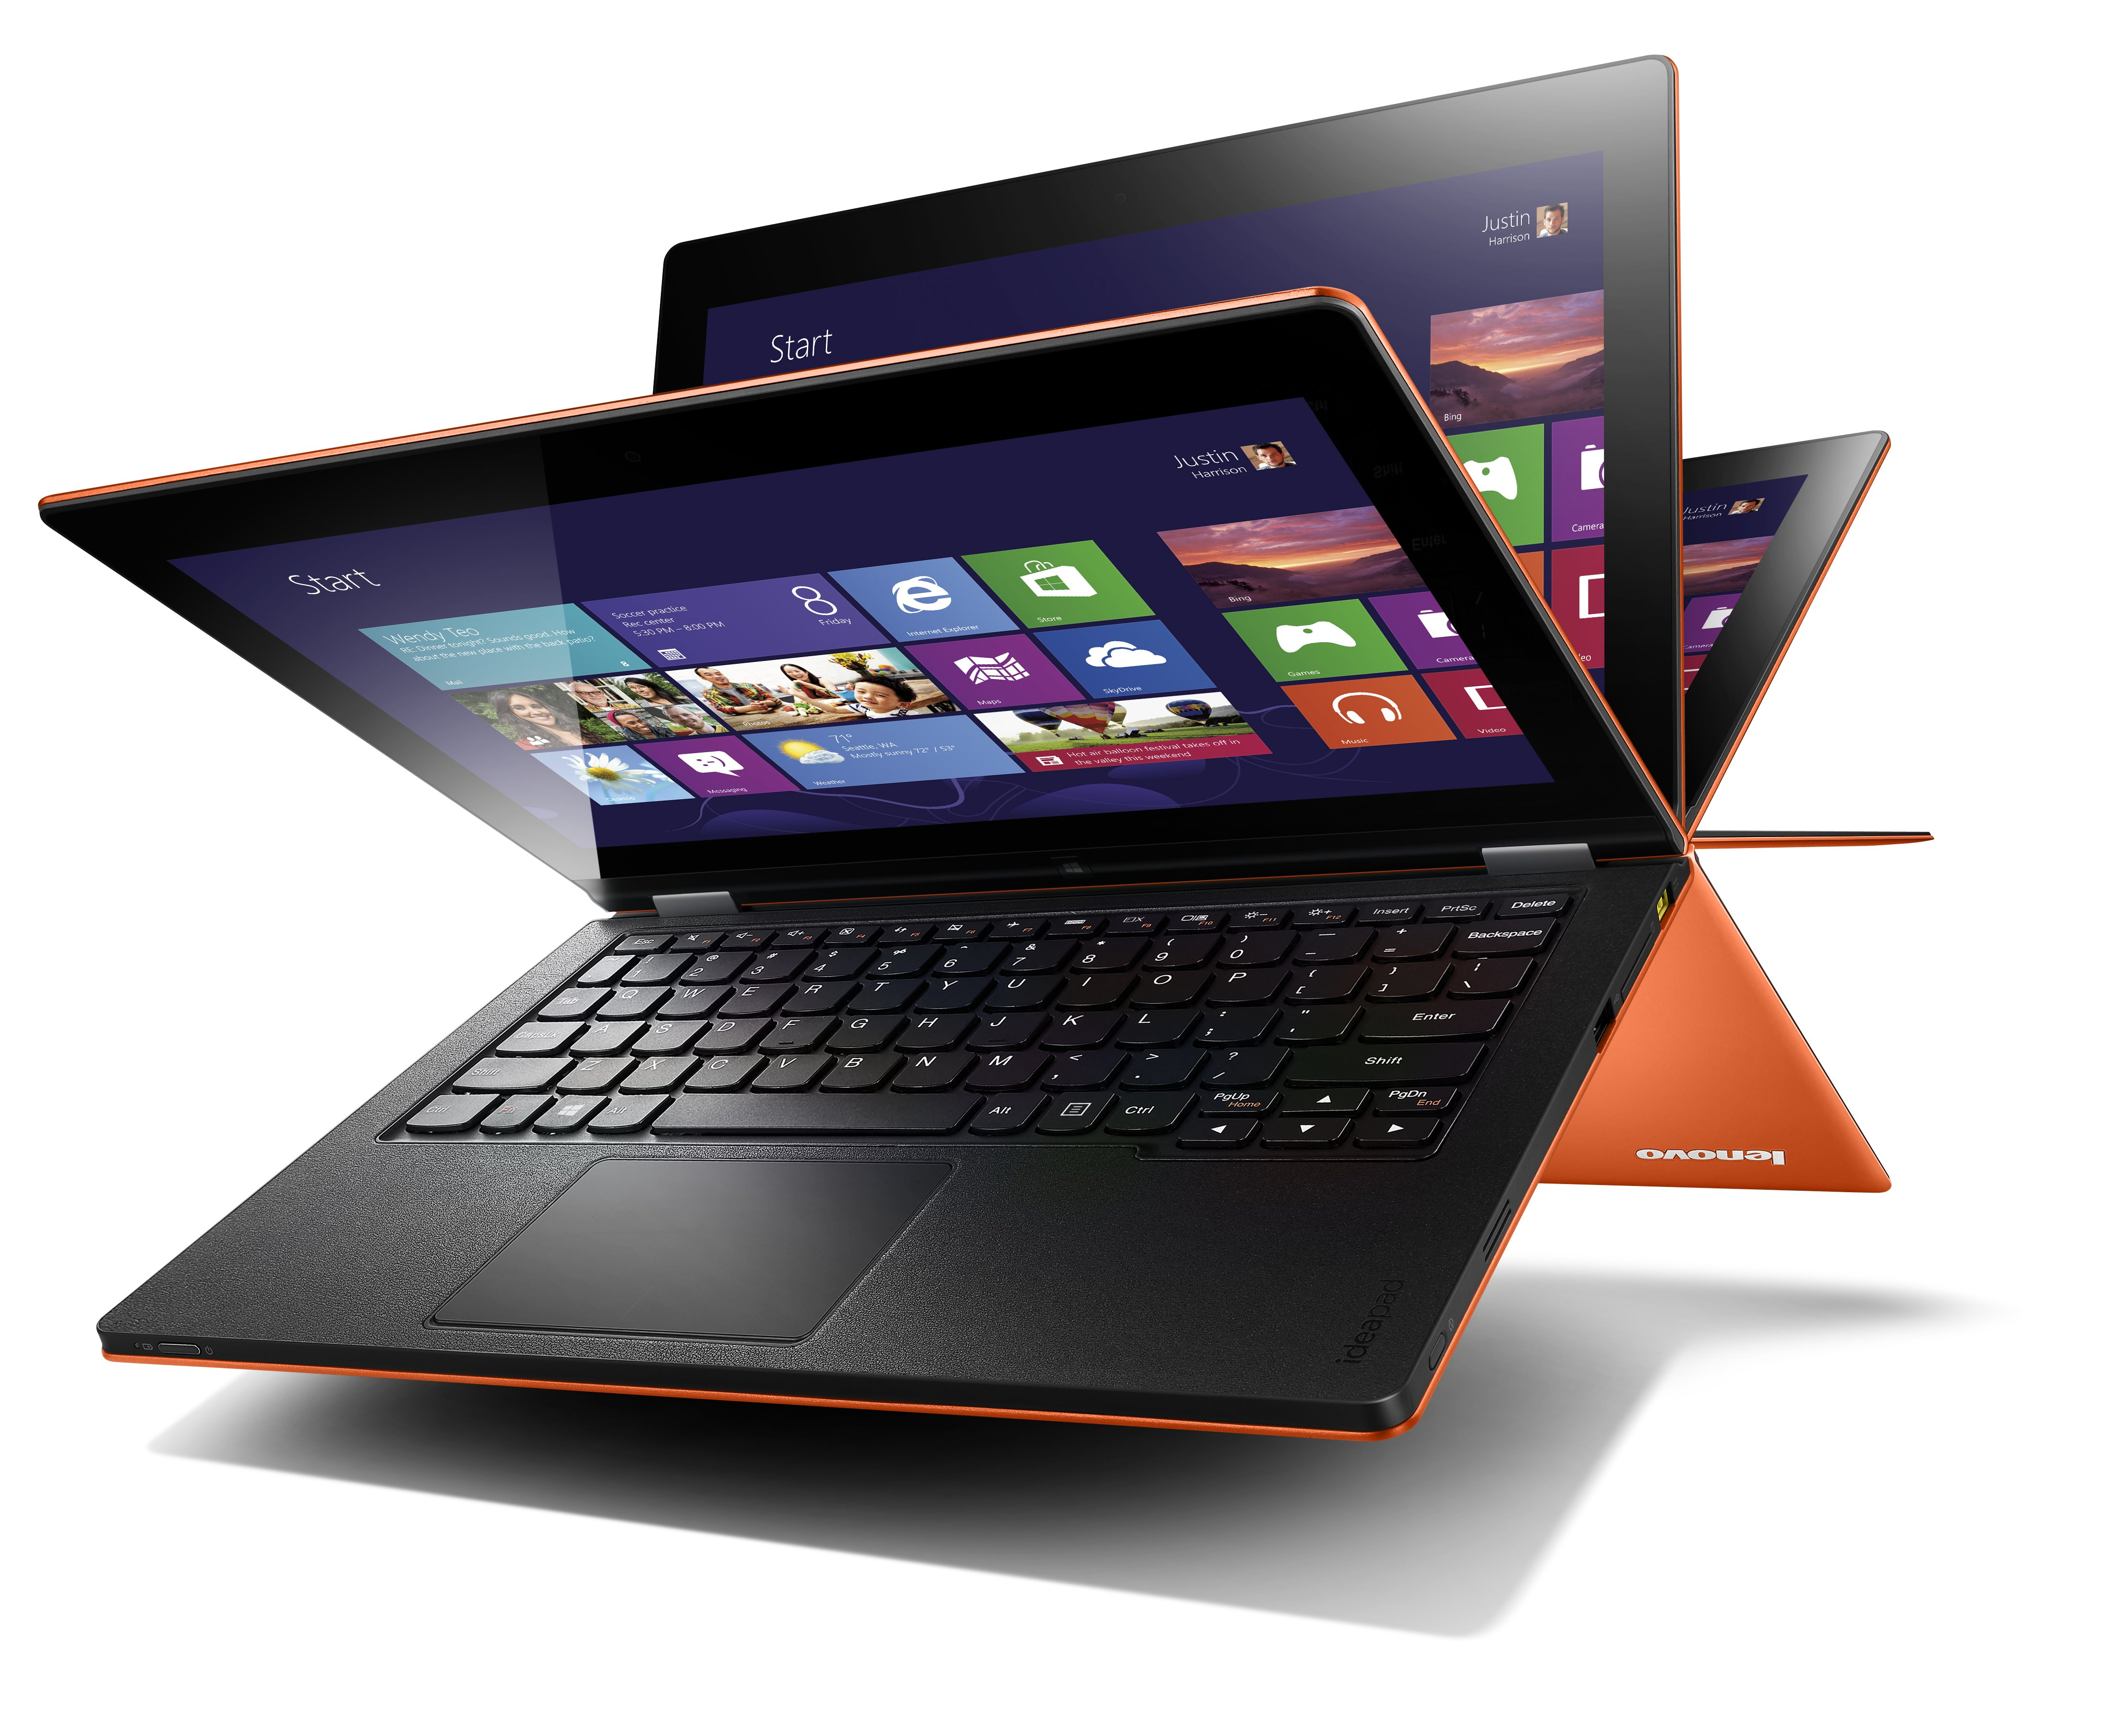 Hit Me Back | Lenovo IdeaPad Yoga 11S: How to Boot From USB